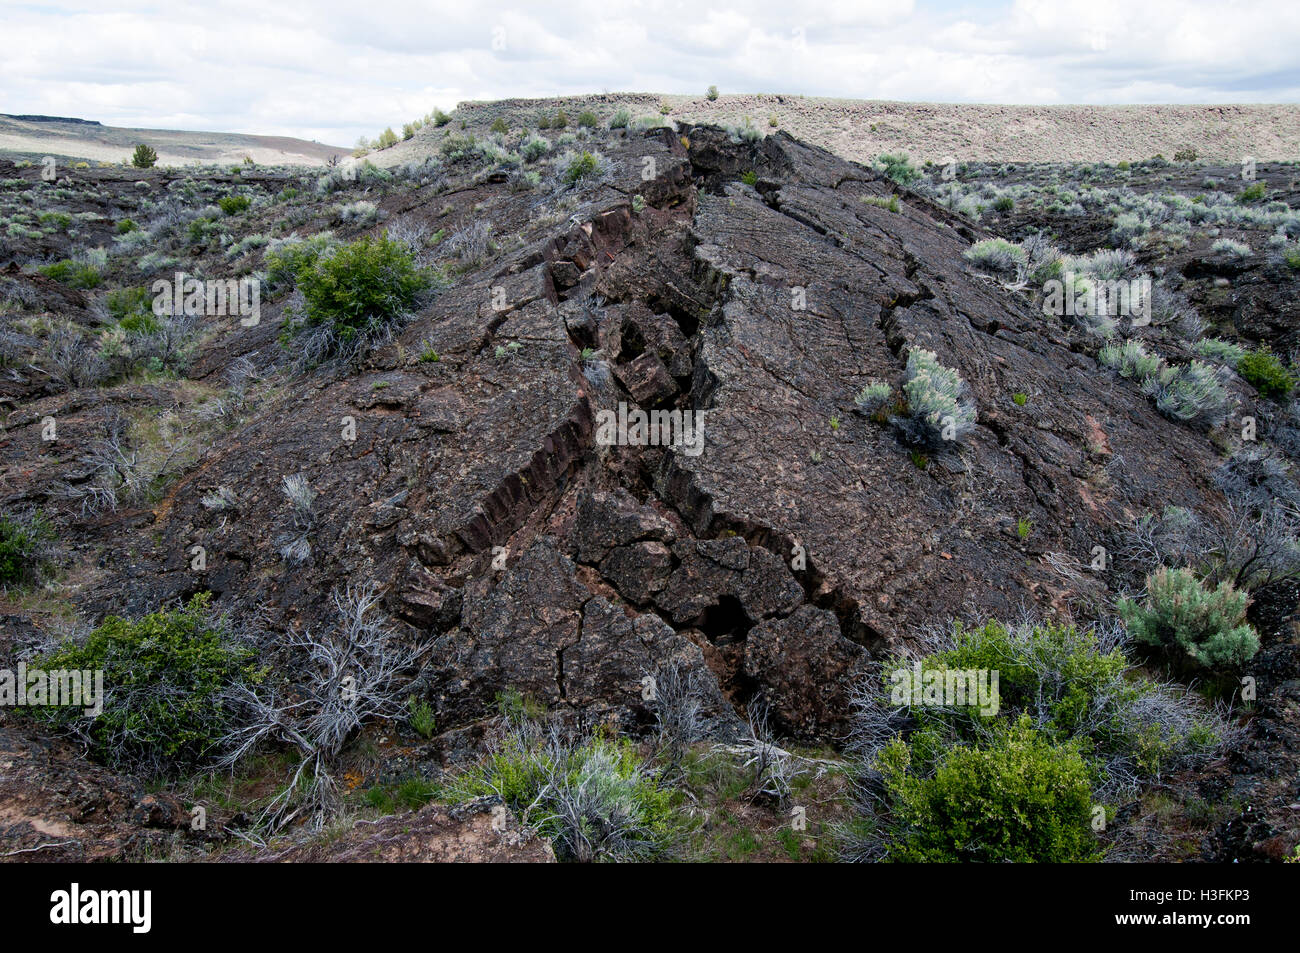 tumuli (lava dome) near Diamond Craters in southeastern Oregon - Stock Image